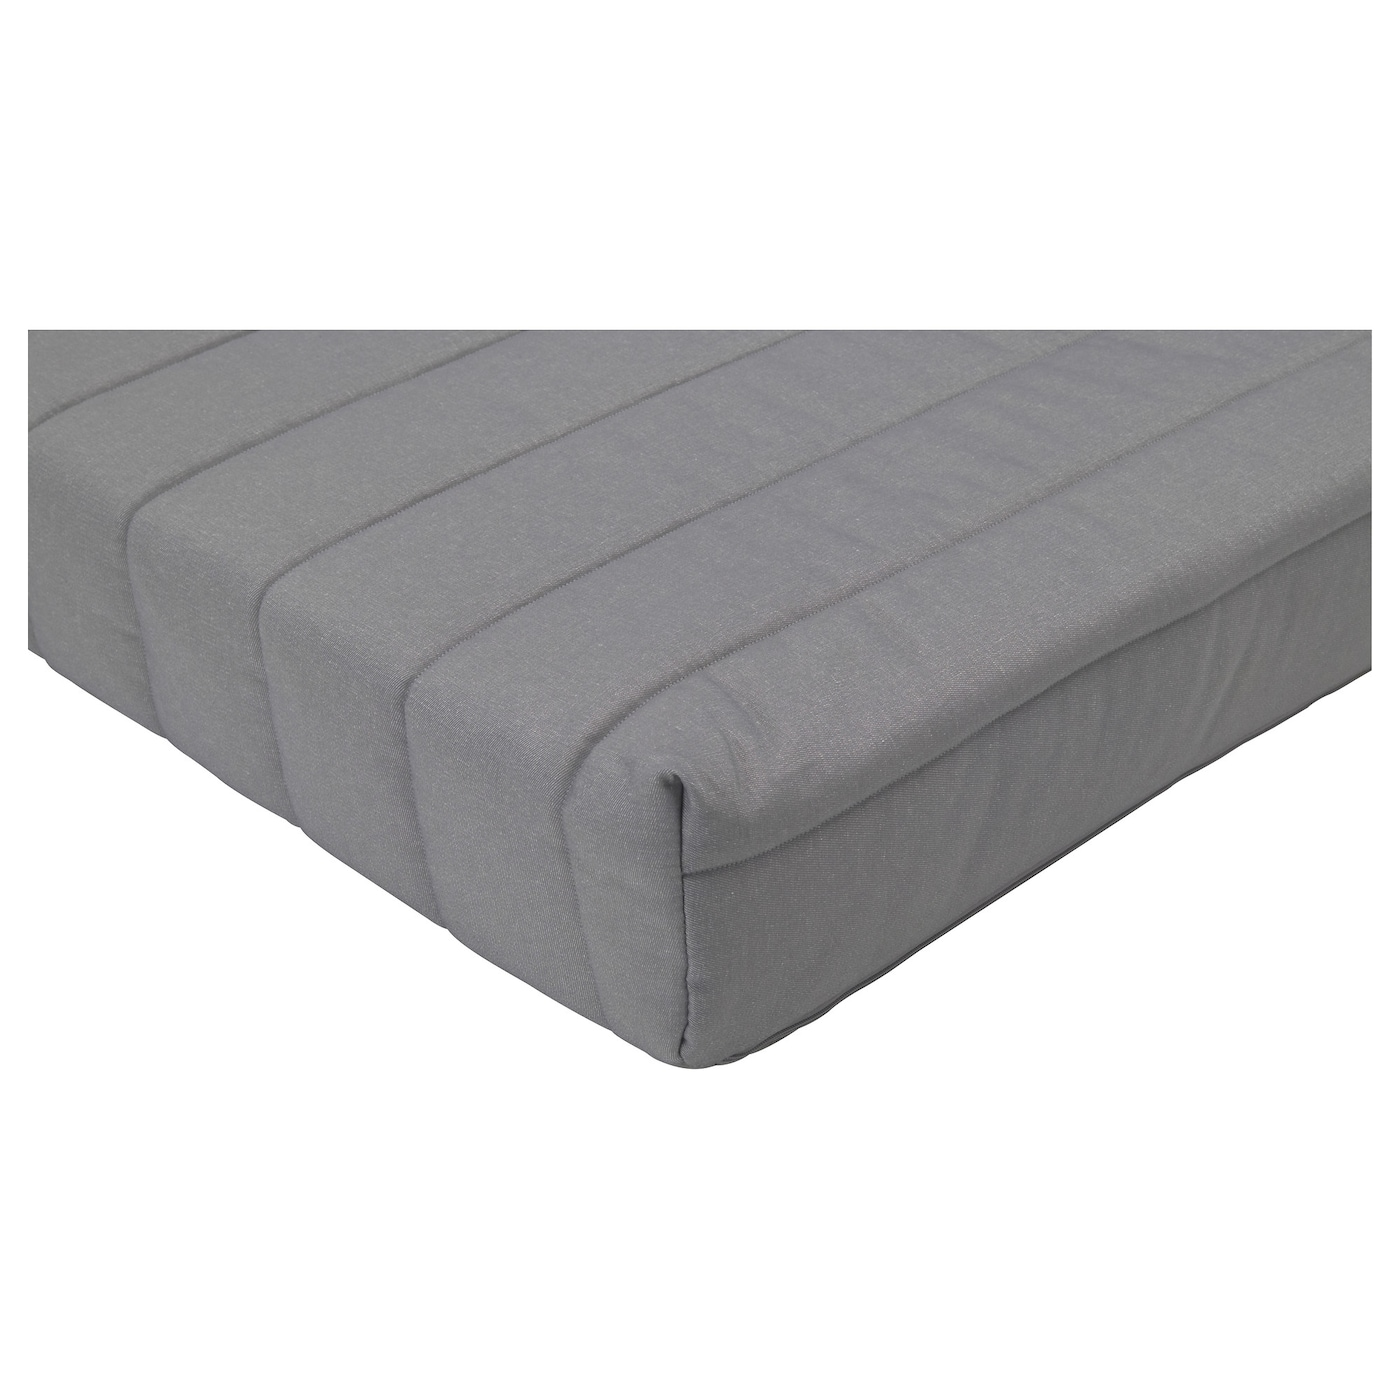 BEDDINGE LVS Mattress 140x200 cm IKEA